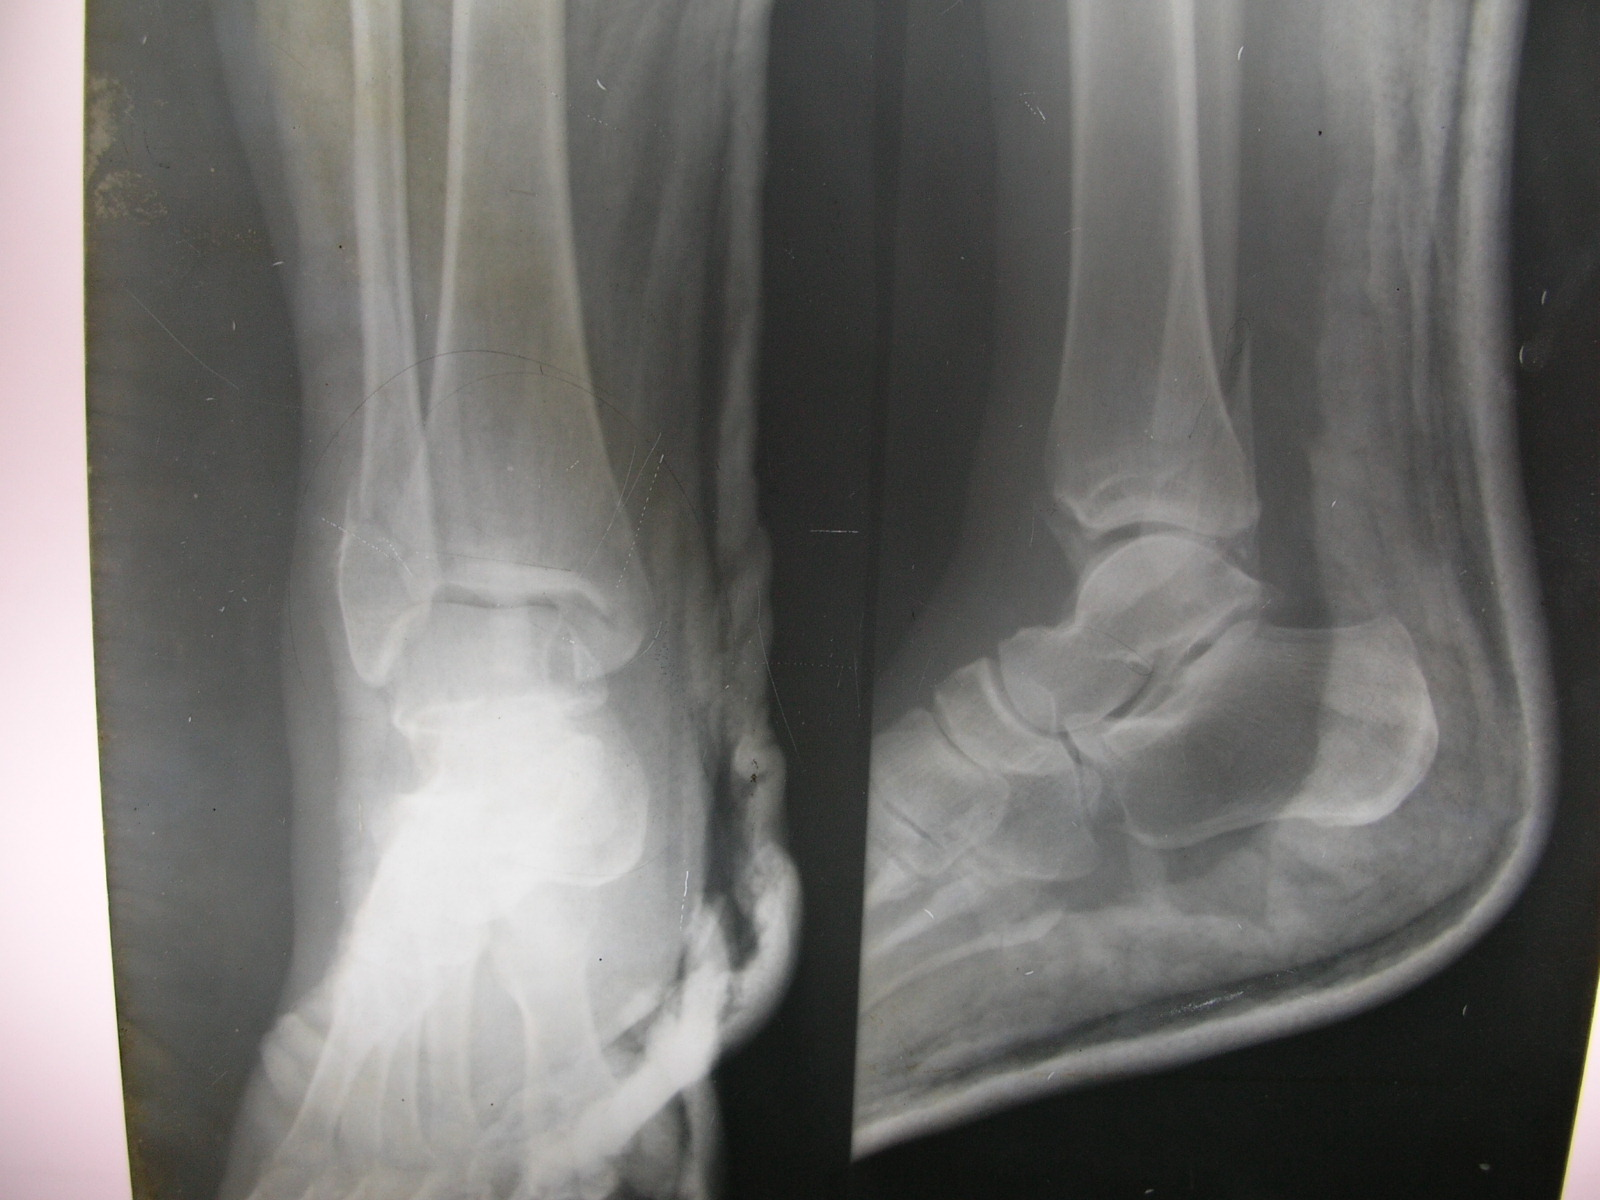 Fracture lateral malleolus of tibia with plaster splint-4.bp.blogspot.com